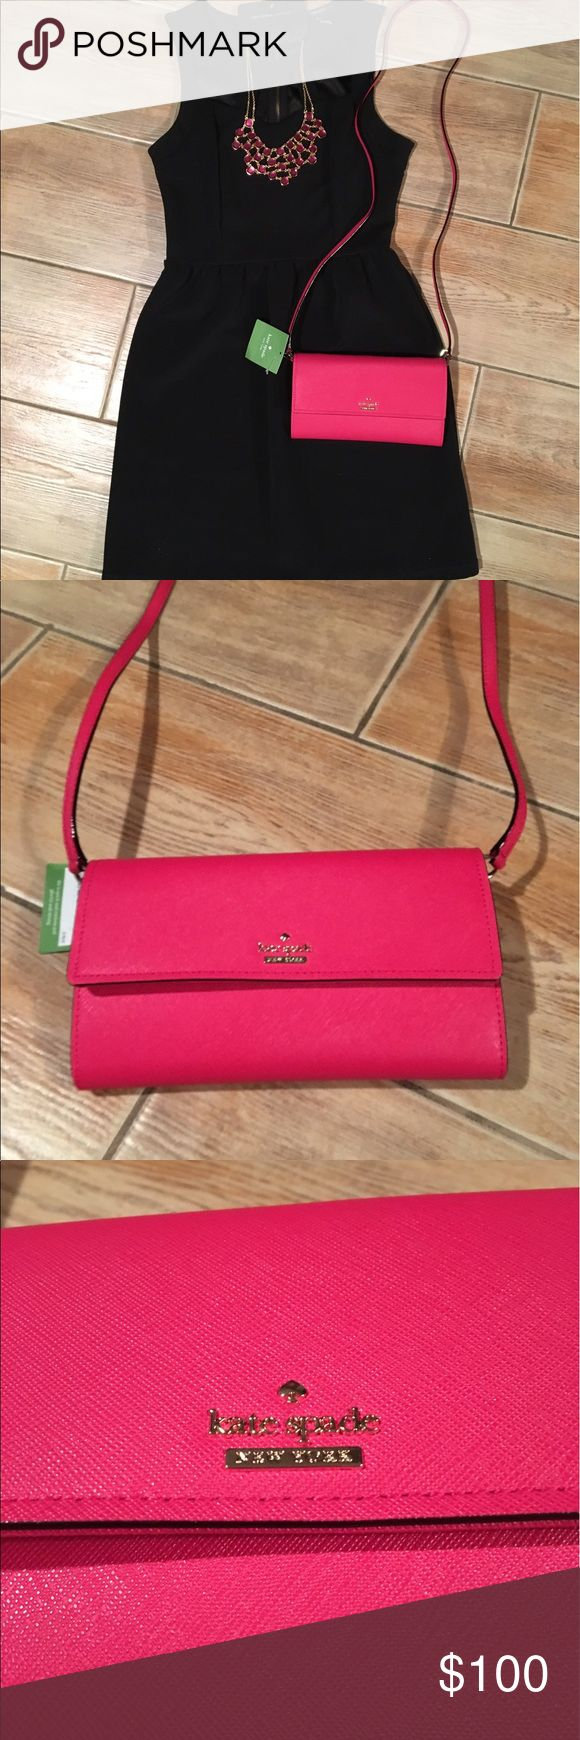 """🎉SALE🎉 NWT Kate Spade Crossbody BRAND NEW, GORGEOUS 🎀♠️ Kate Spade leather crossbody wallet with snap closure! Style is called """"Cameron Street Stormie"""" and the color is called """"punch"""". It's a bright and bold watermelon color! 🍉 there's a black and white stripe print fabric on the interior of the zipper pocket and the secret pockets inside for cash. Strap is removable. Trendy and the perfect size for a night on the town. Last photo is the full details of the crossbody on the Kate Spade…"""